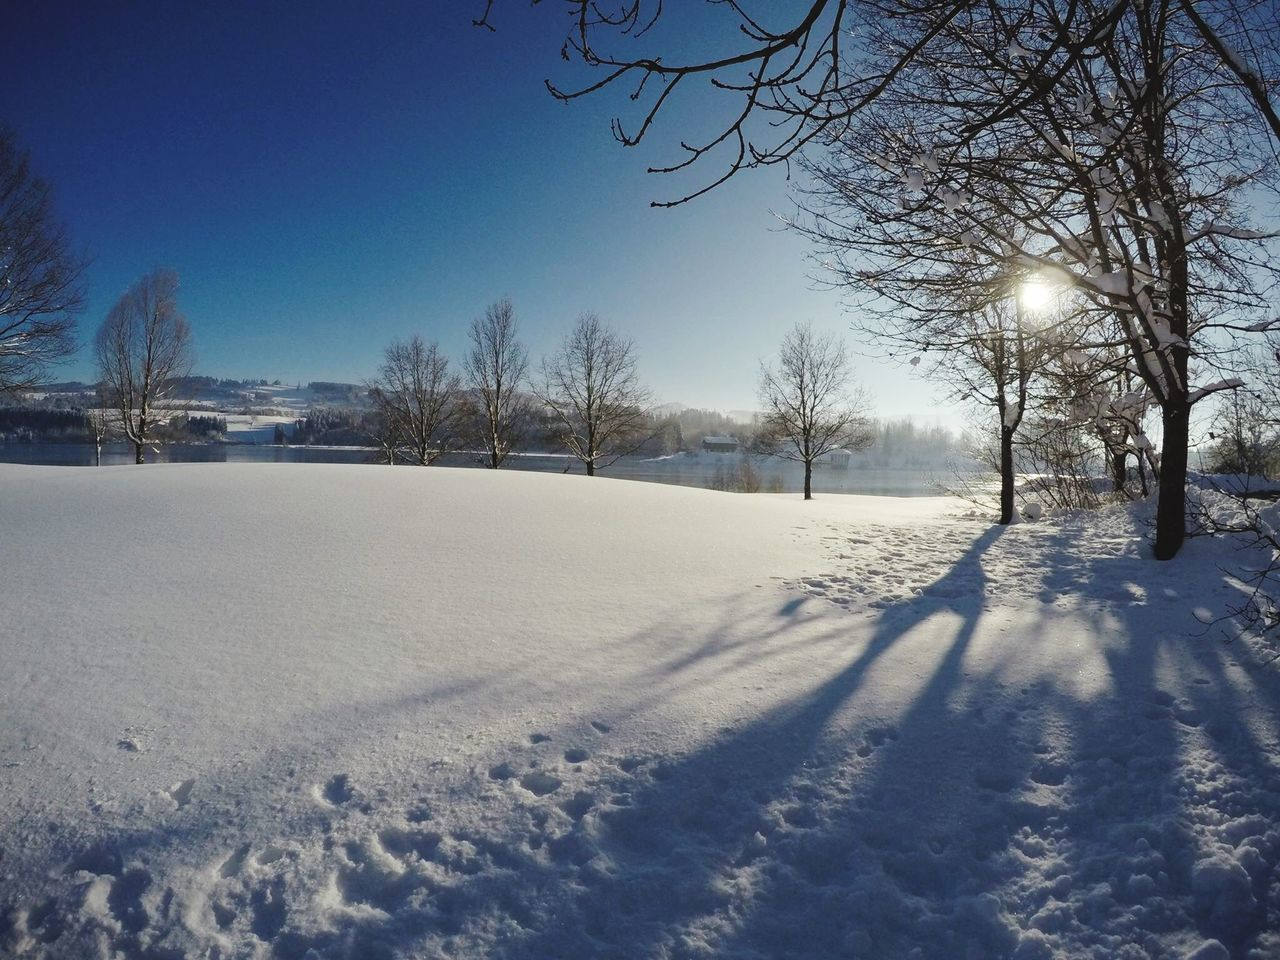 Wintertime Gopro Gopro Shots Winter Beat-fighter Snow Allgäu Landscape Photography Deutschland